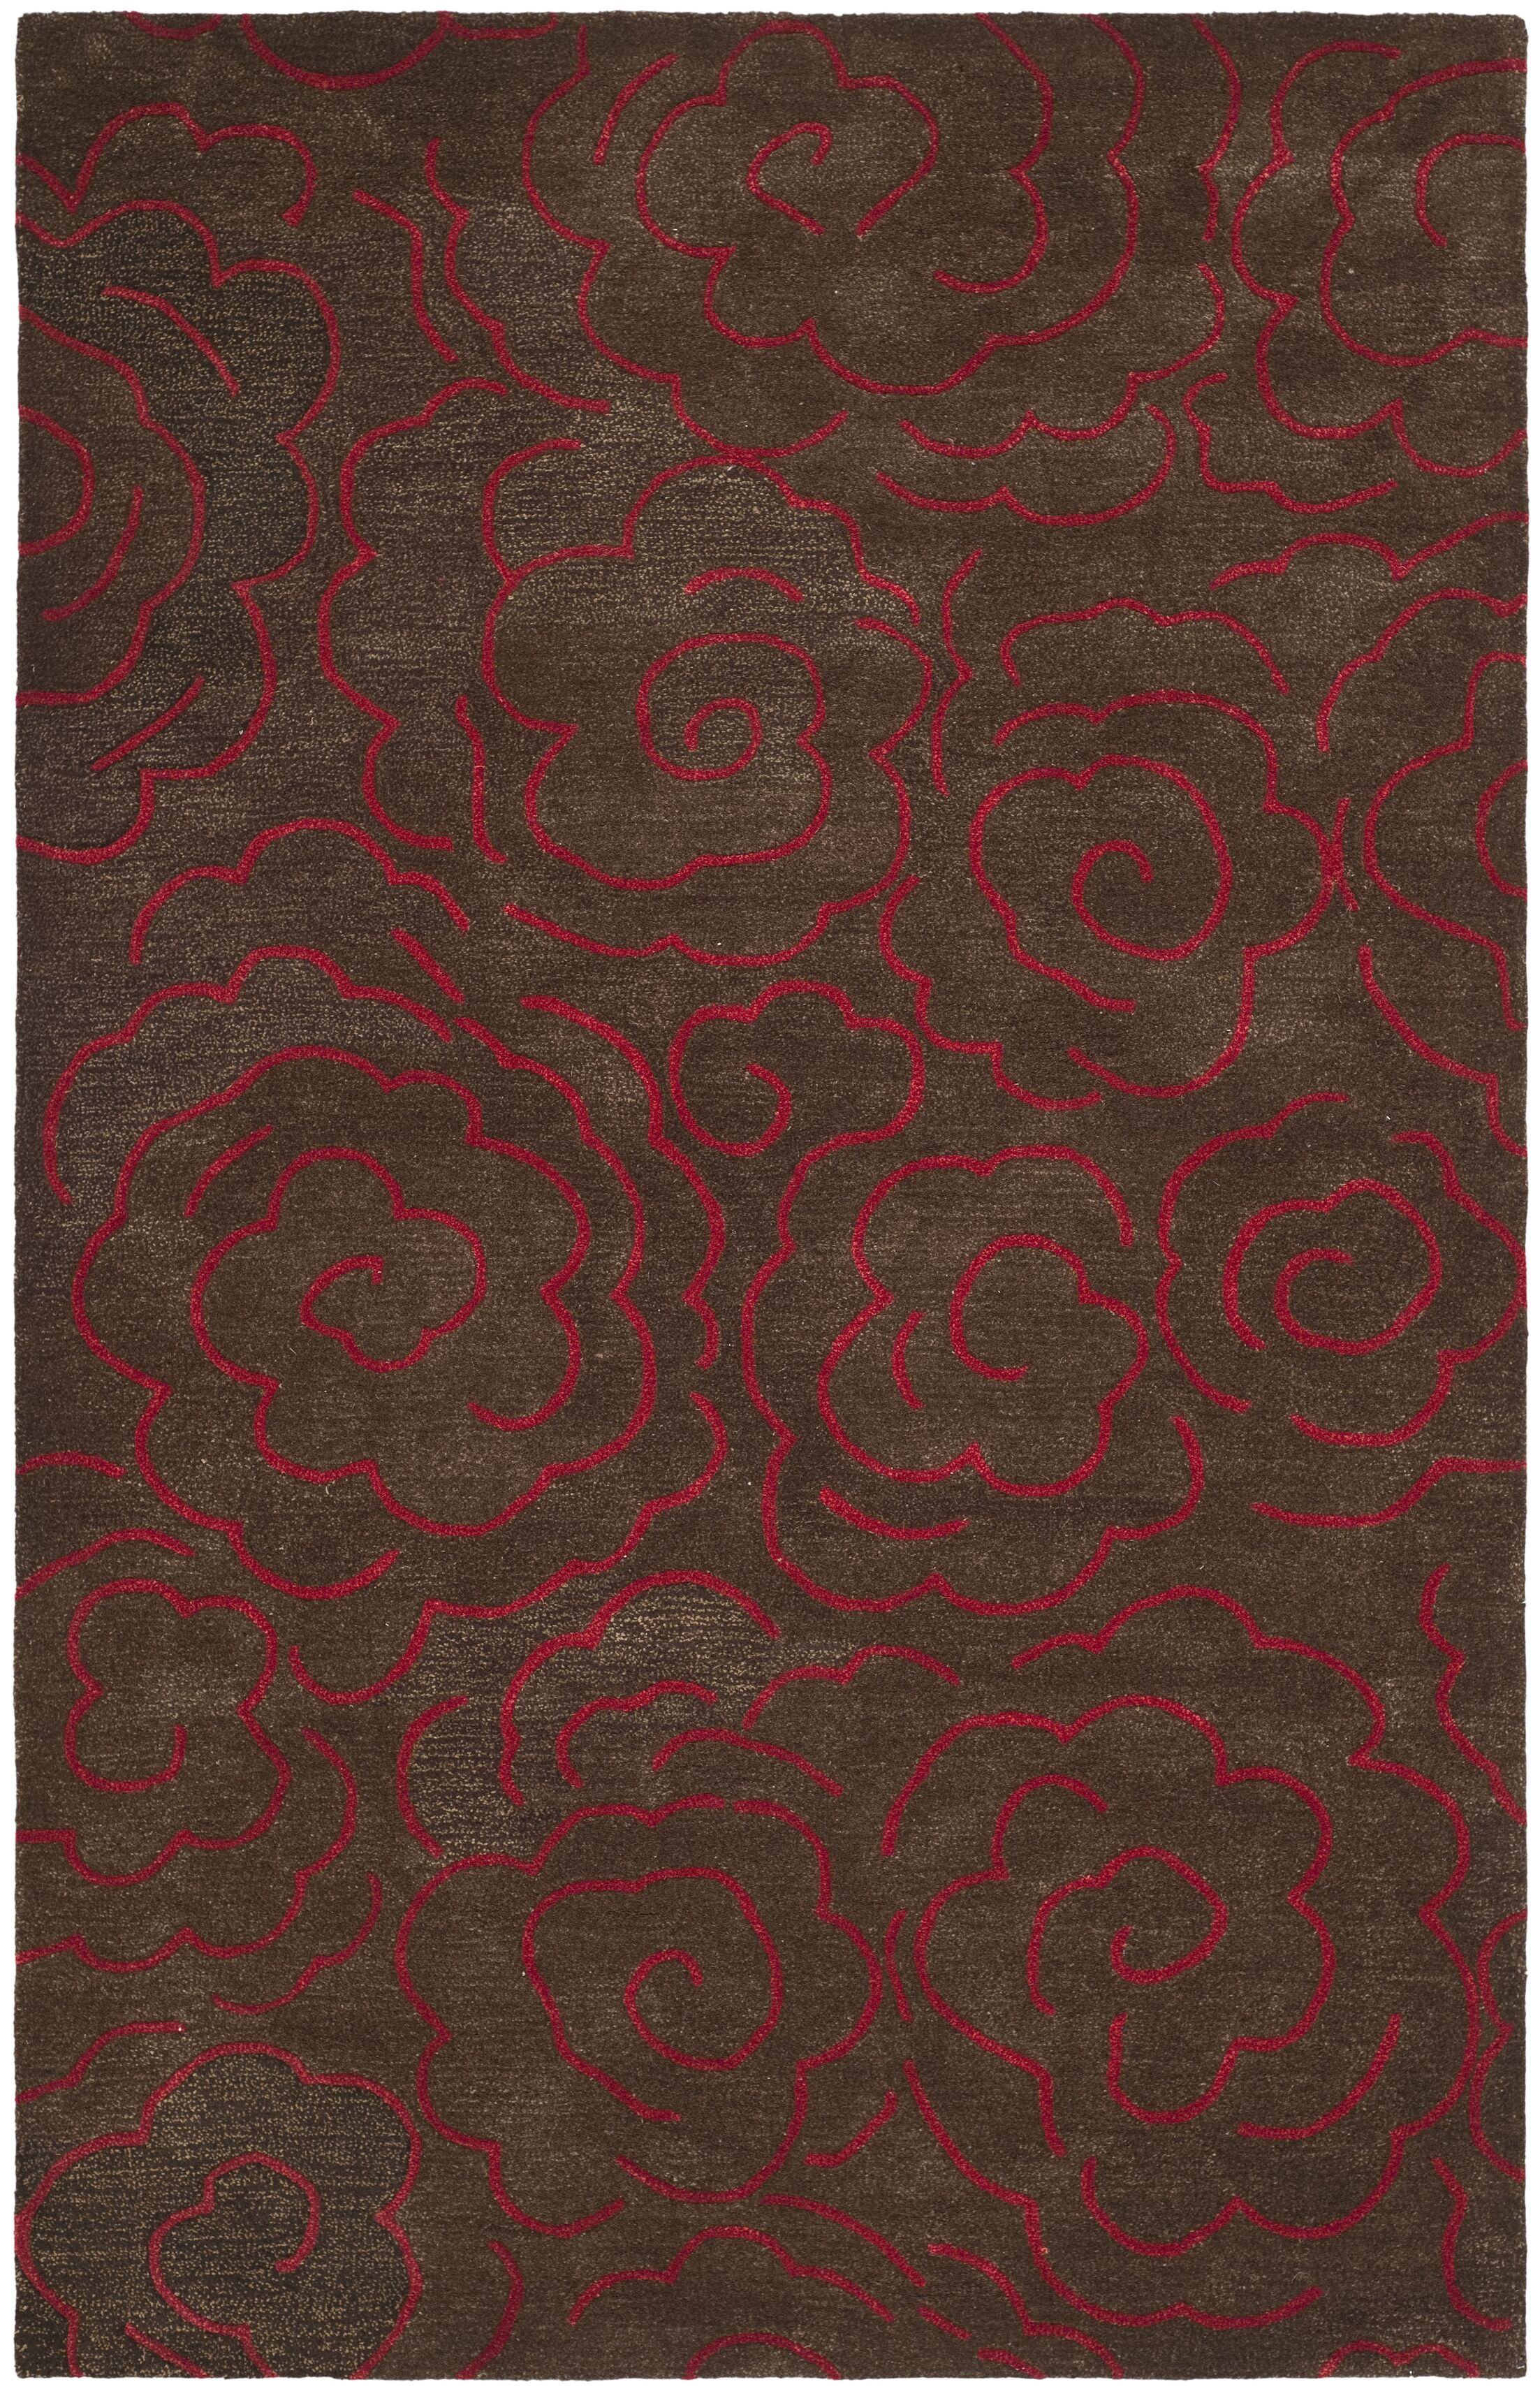 Tatyana Chocolate/Red Area Rug Rug Size: Rectangle 5' x 8'